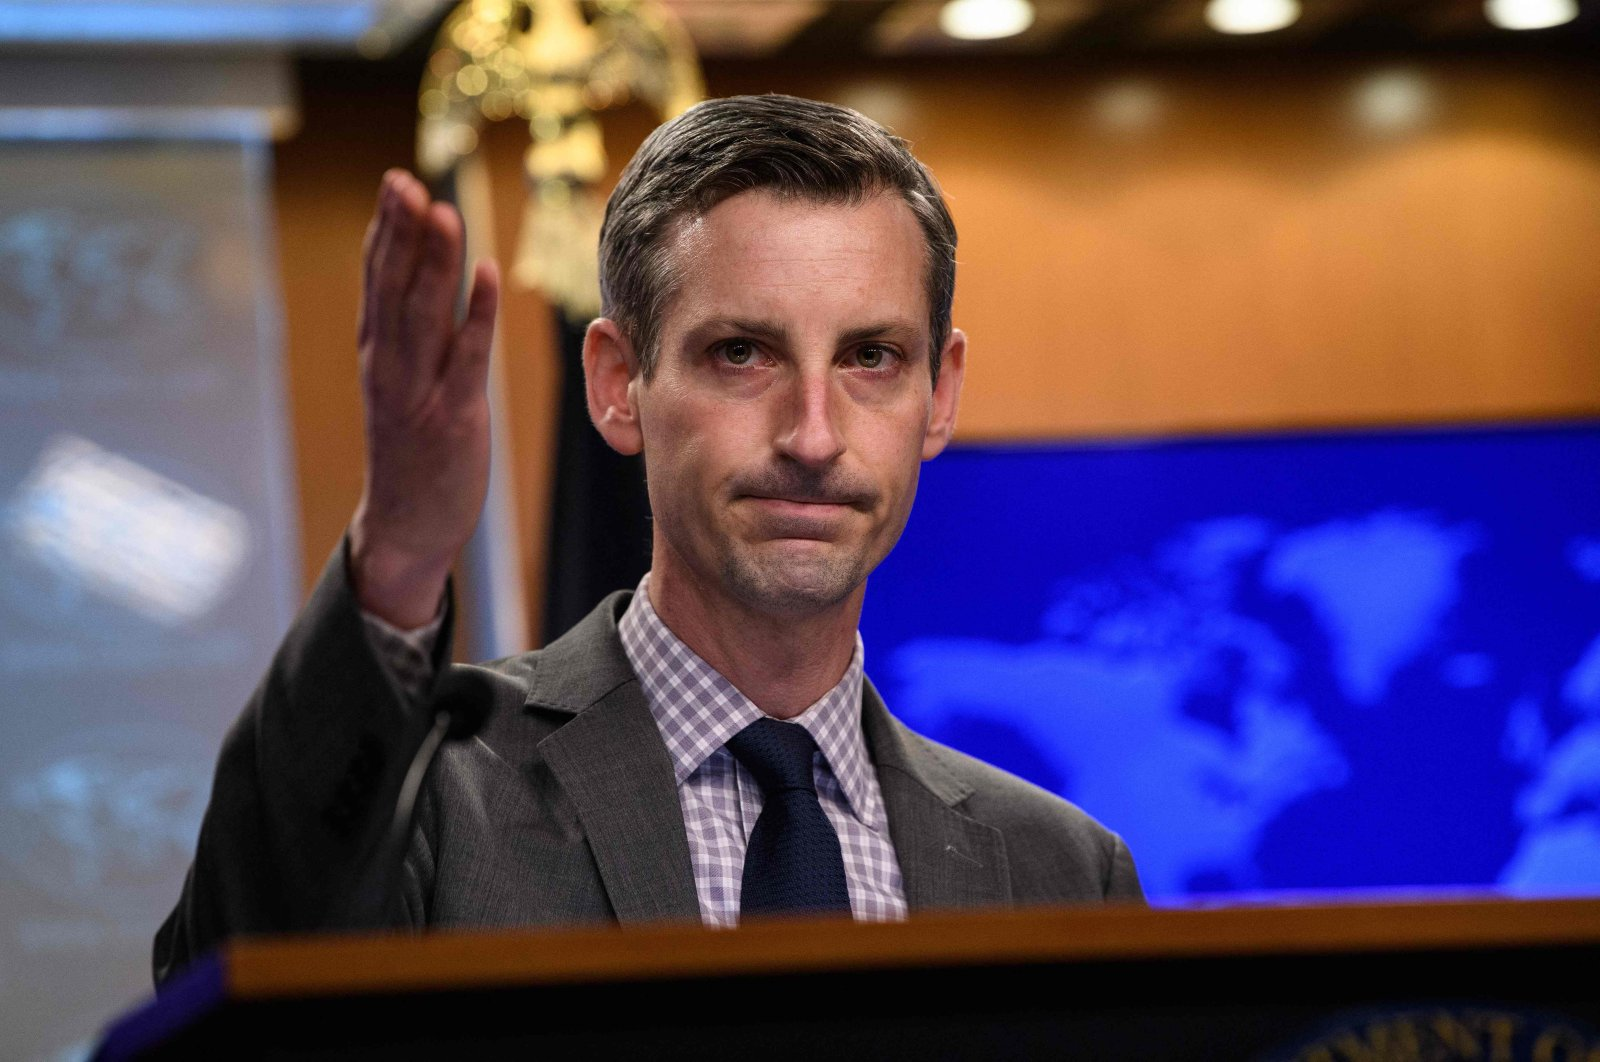 U.S. State Department spokesperson Ned Price gestures as he speaks during the daily press briefing at the State Department in Washington, D.C., on Feb. 25, 2021. (AFP Photo)